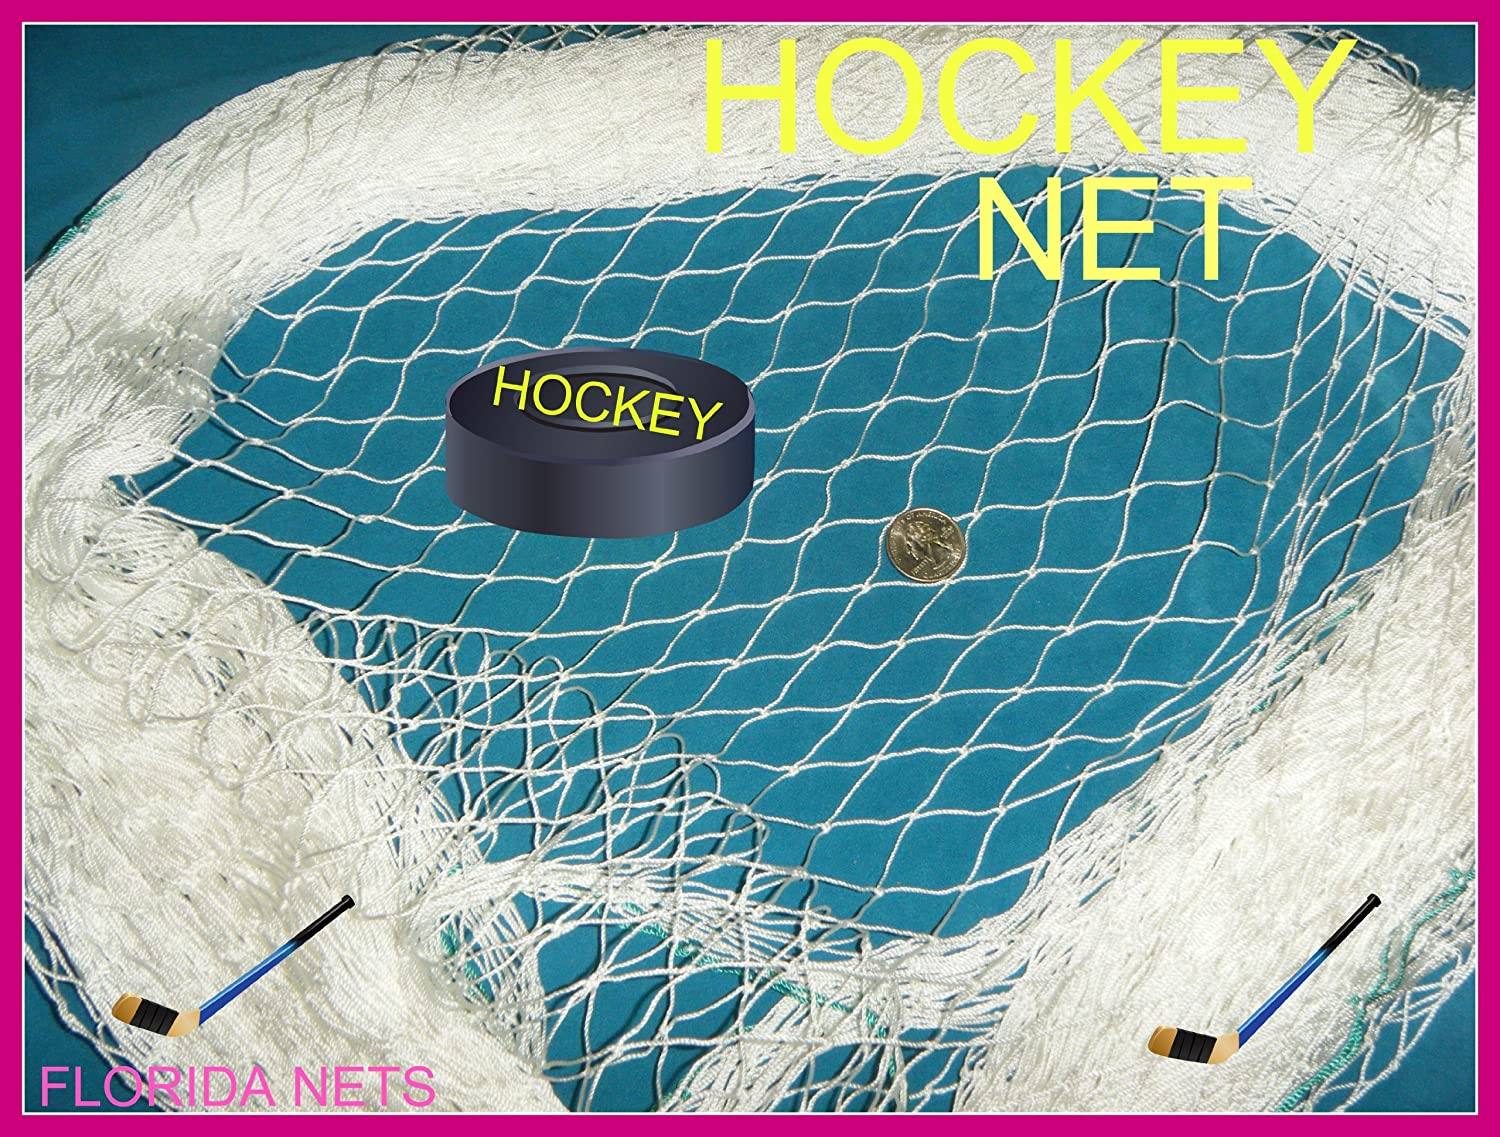 1c076c758 Amazon.com : 30'x12' Golf Net, impact, backstop, Hockey, Barrier, Fishing  Nets, Hurling Game : Golf Hitting Nets : Sports & Outdoors